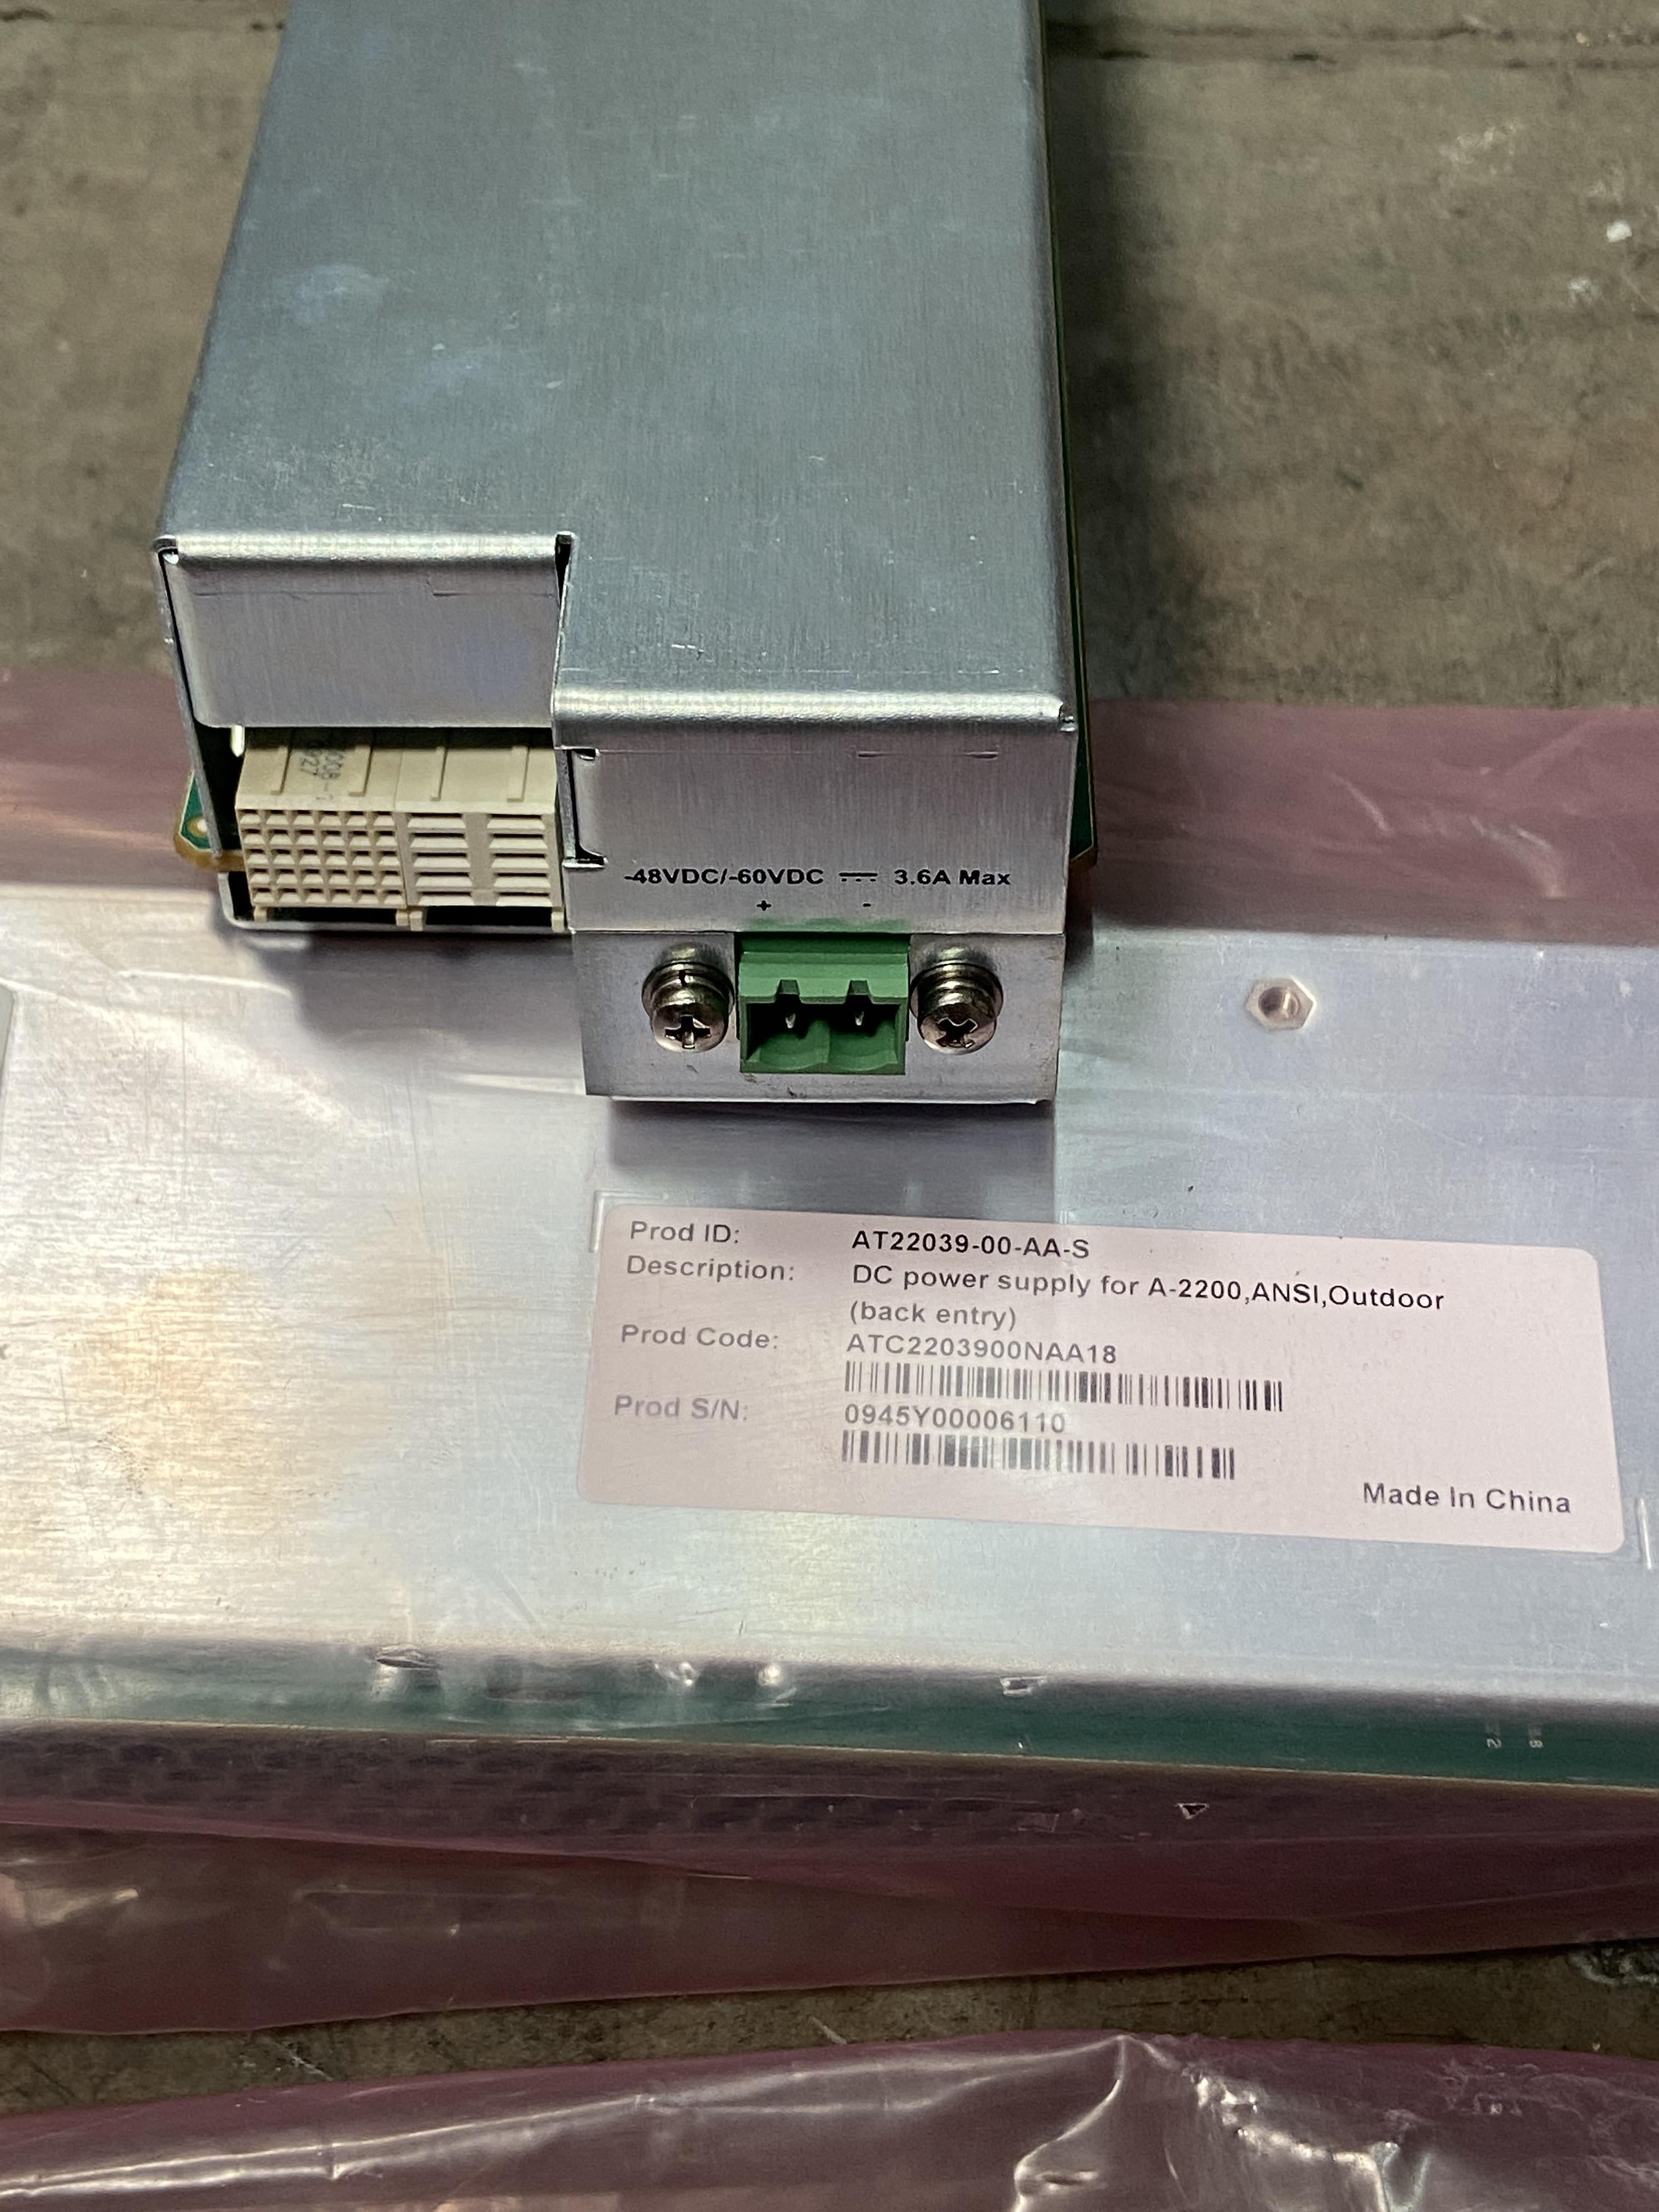 Lot 1S - Lot of 4 Rear AC and DC Power Supply Modules AT22035 and AT22039